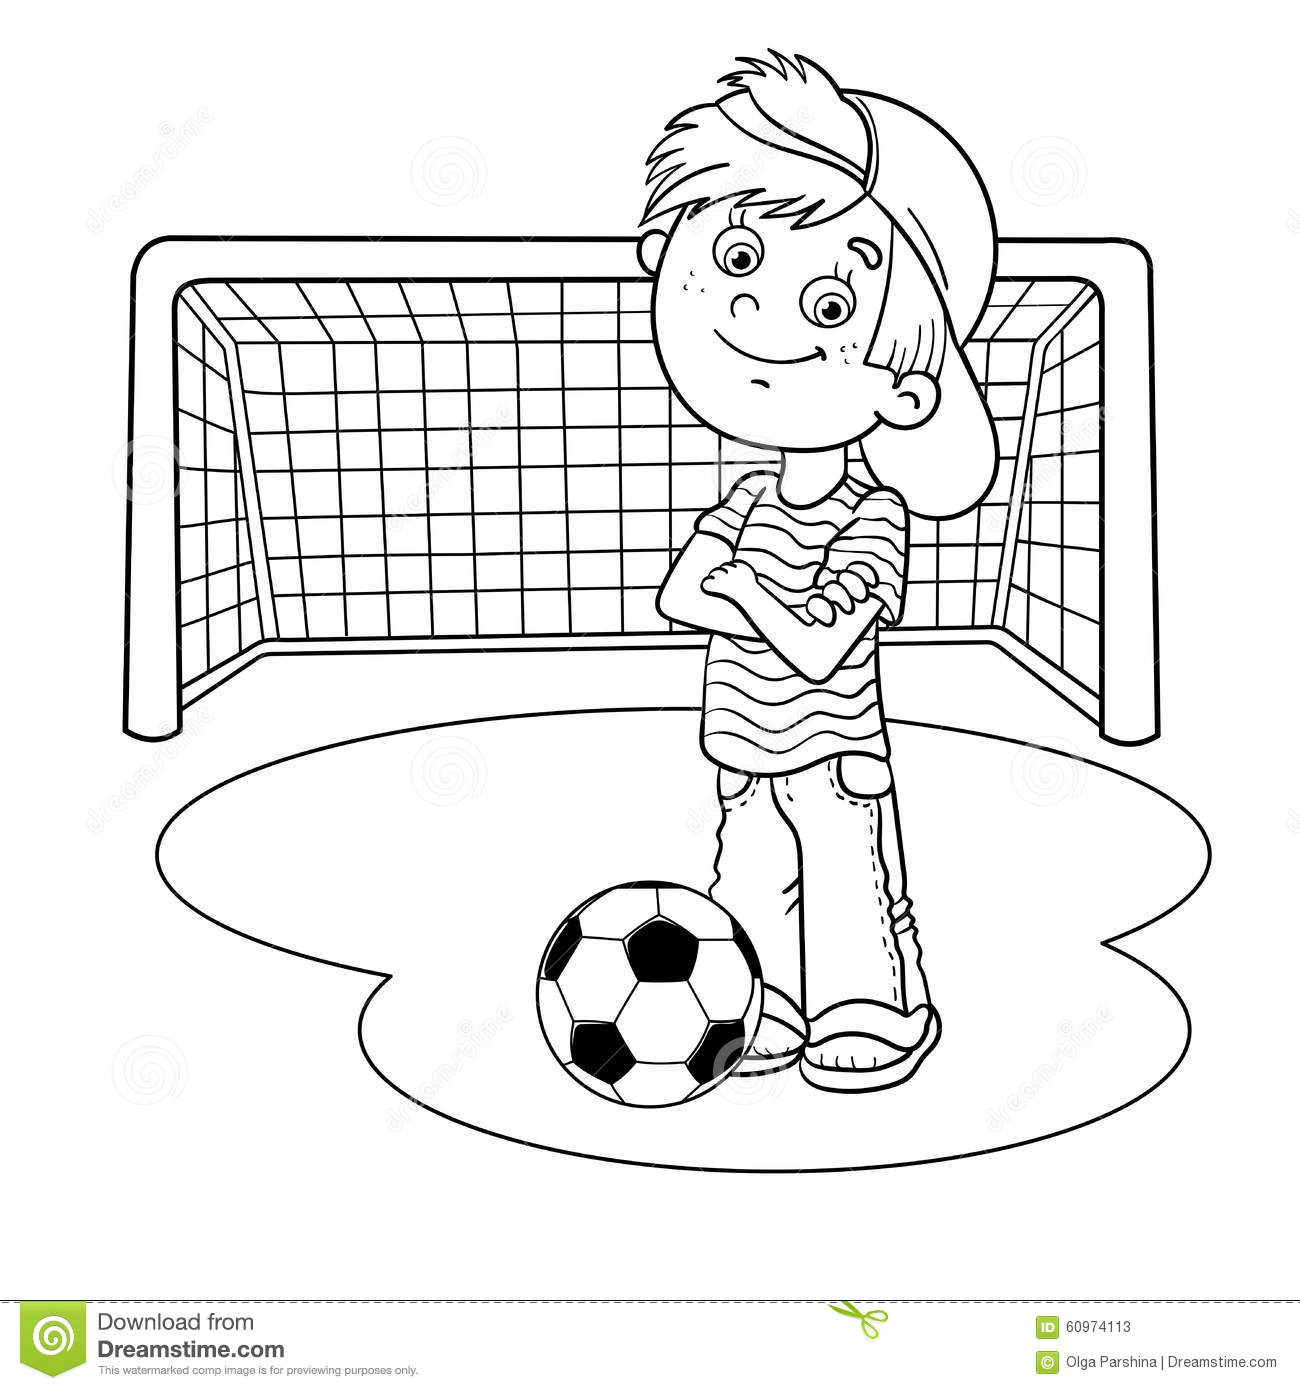 goals coloring pages - photo#15